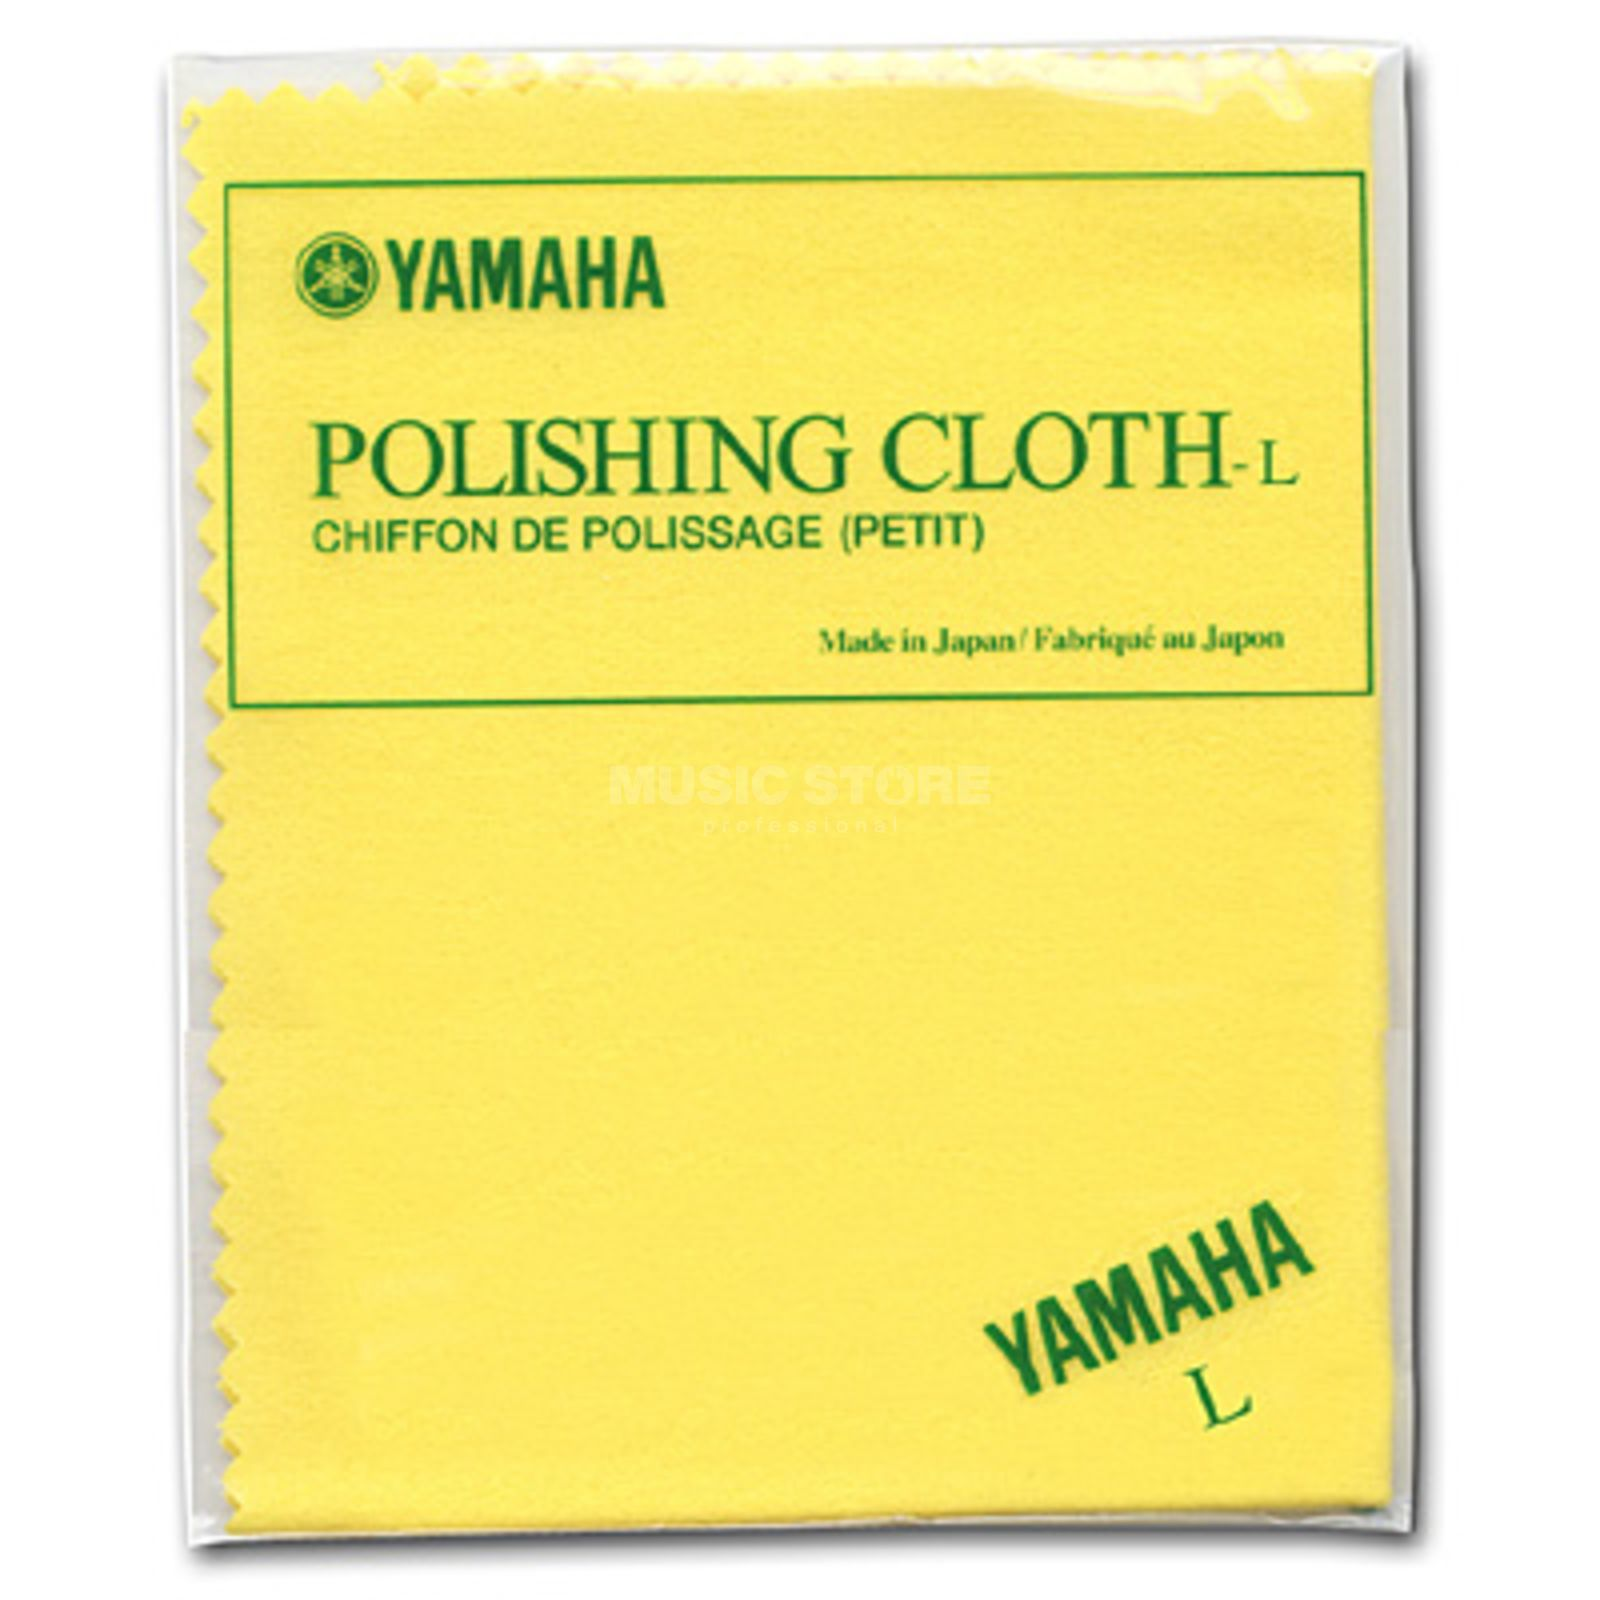 Yamaha Polishing Cloth Size L Yellow Produktbillede